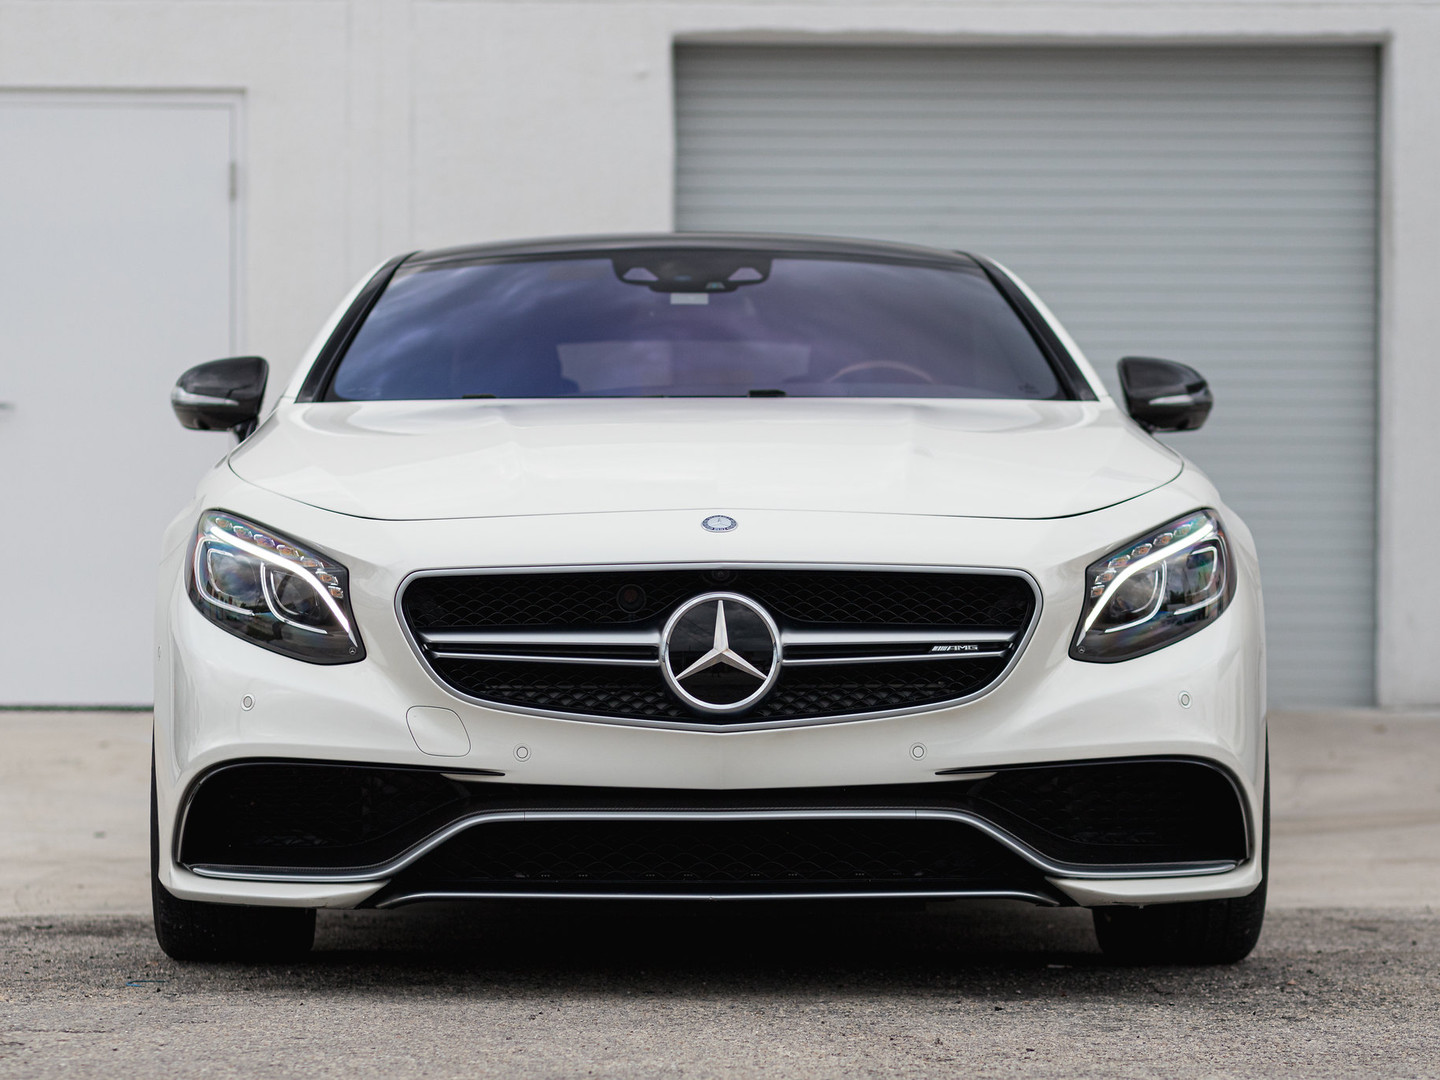 Mercedes Benz S 63 - Full Front Paint Protection Film